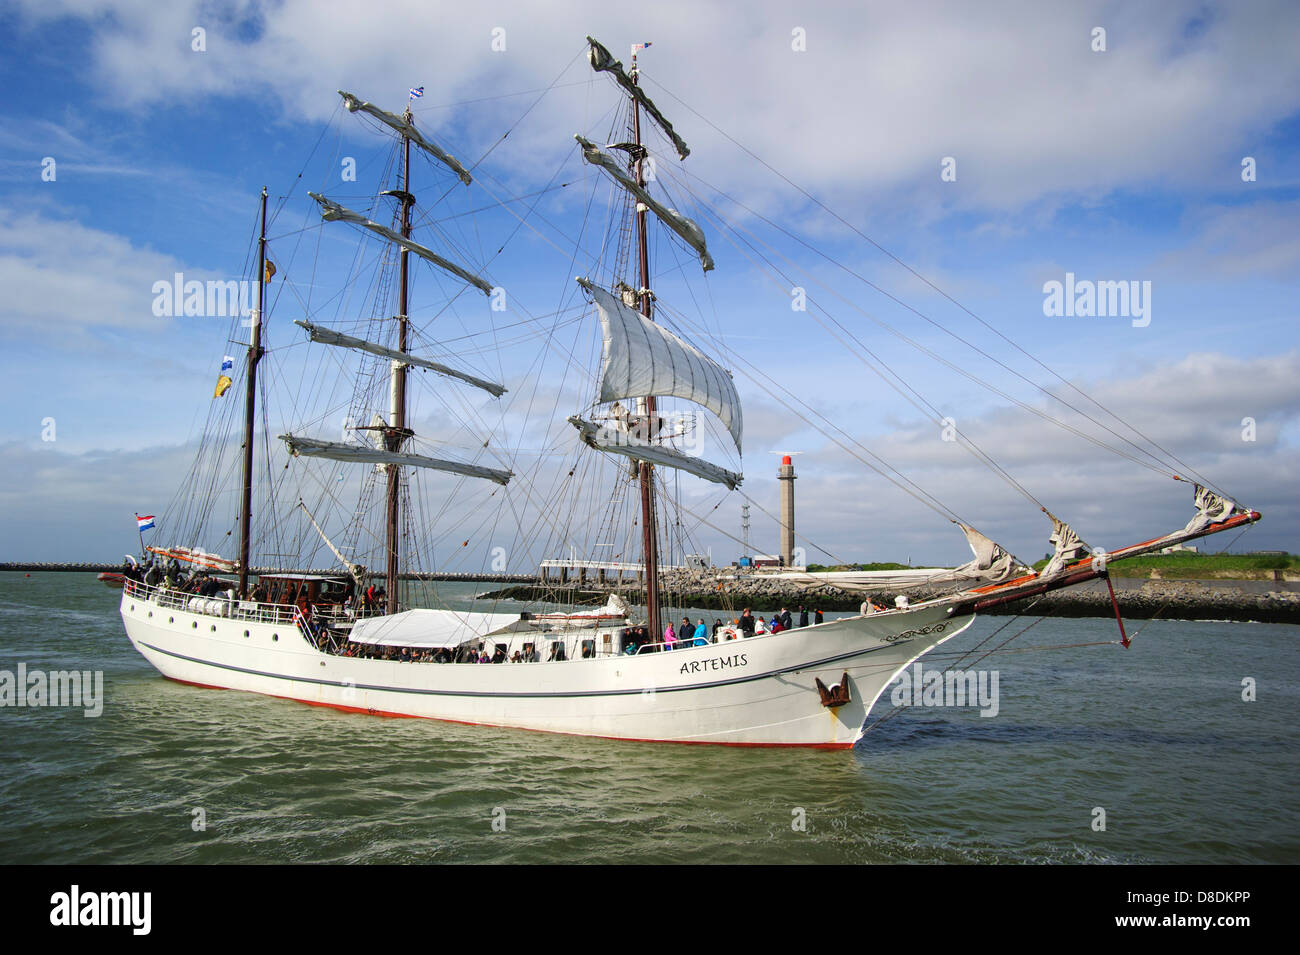 Three-masted barque Artemis during the maritime festival Oostende voor Anker / Ostend at Anchor 2013, Belgium - Stock Image